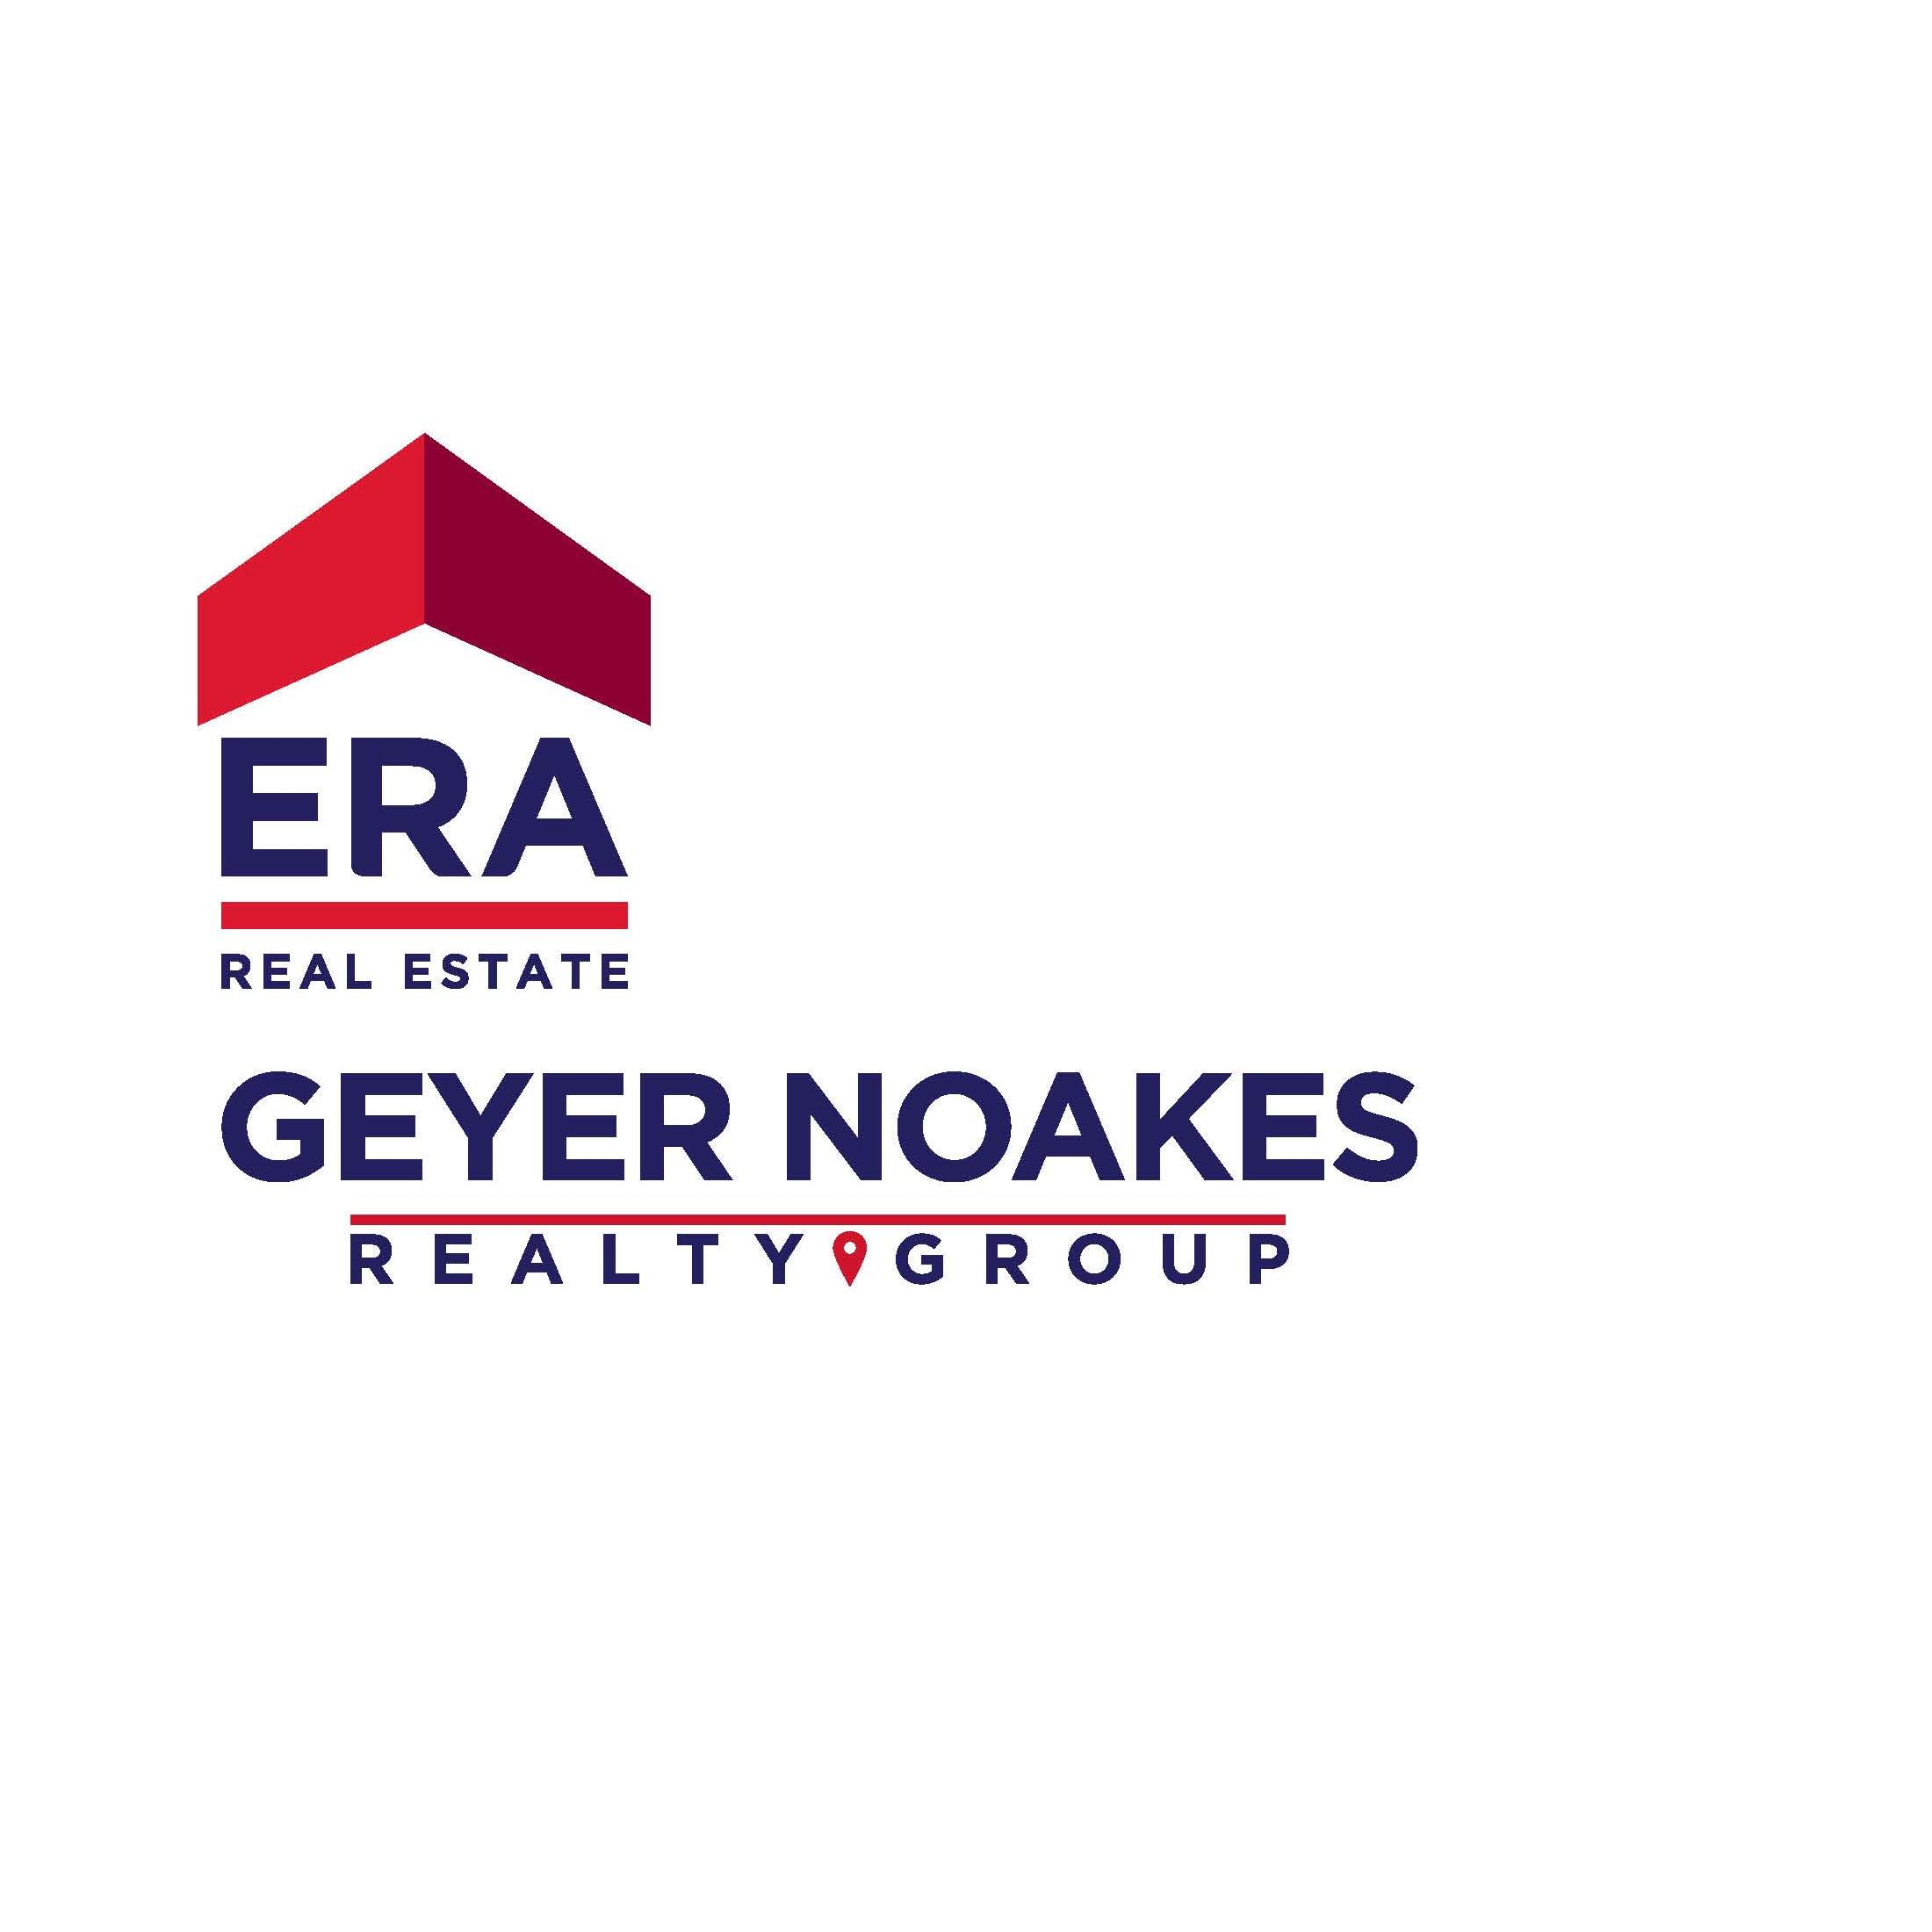 ERA Geyer-Noakes Realty Group - Findlay, OH - Real Estate Agents